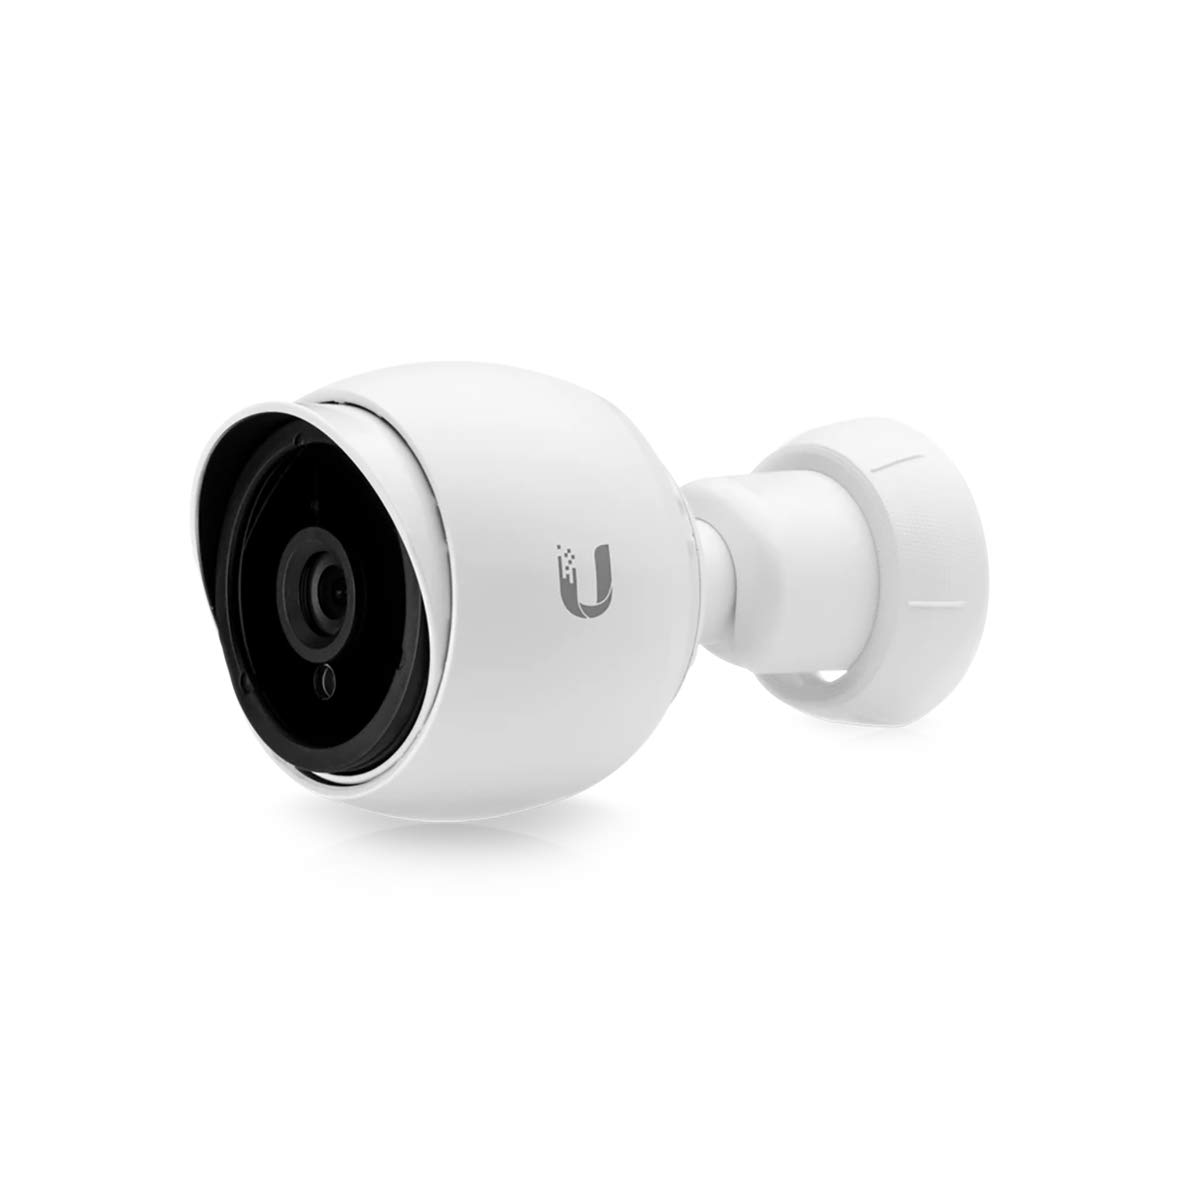 Ubiquiti Unifi Bullet Camera | UVC-G3-Bullet by Ubiquiti Networks